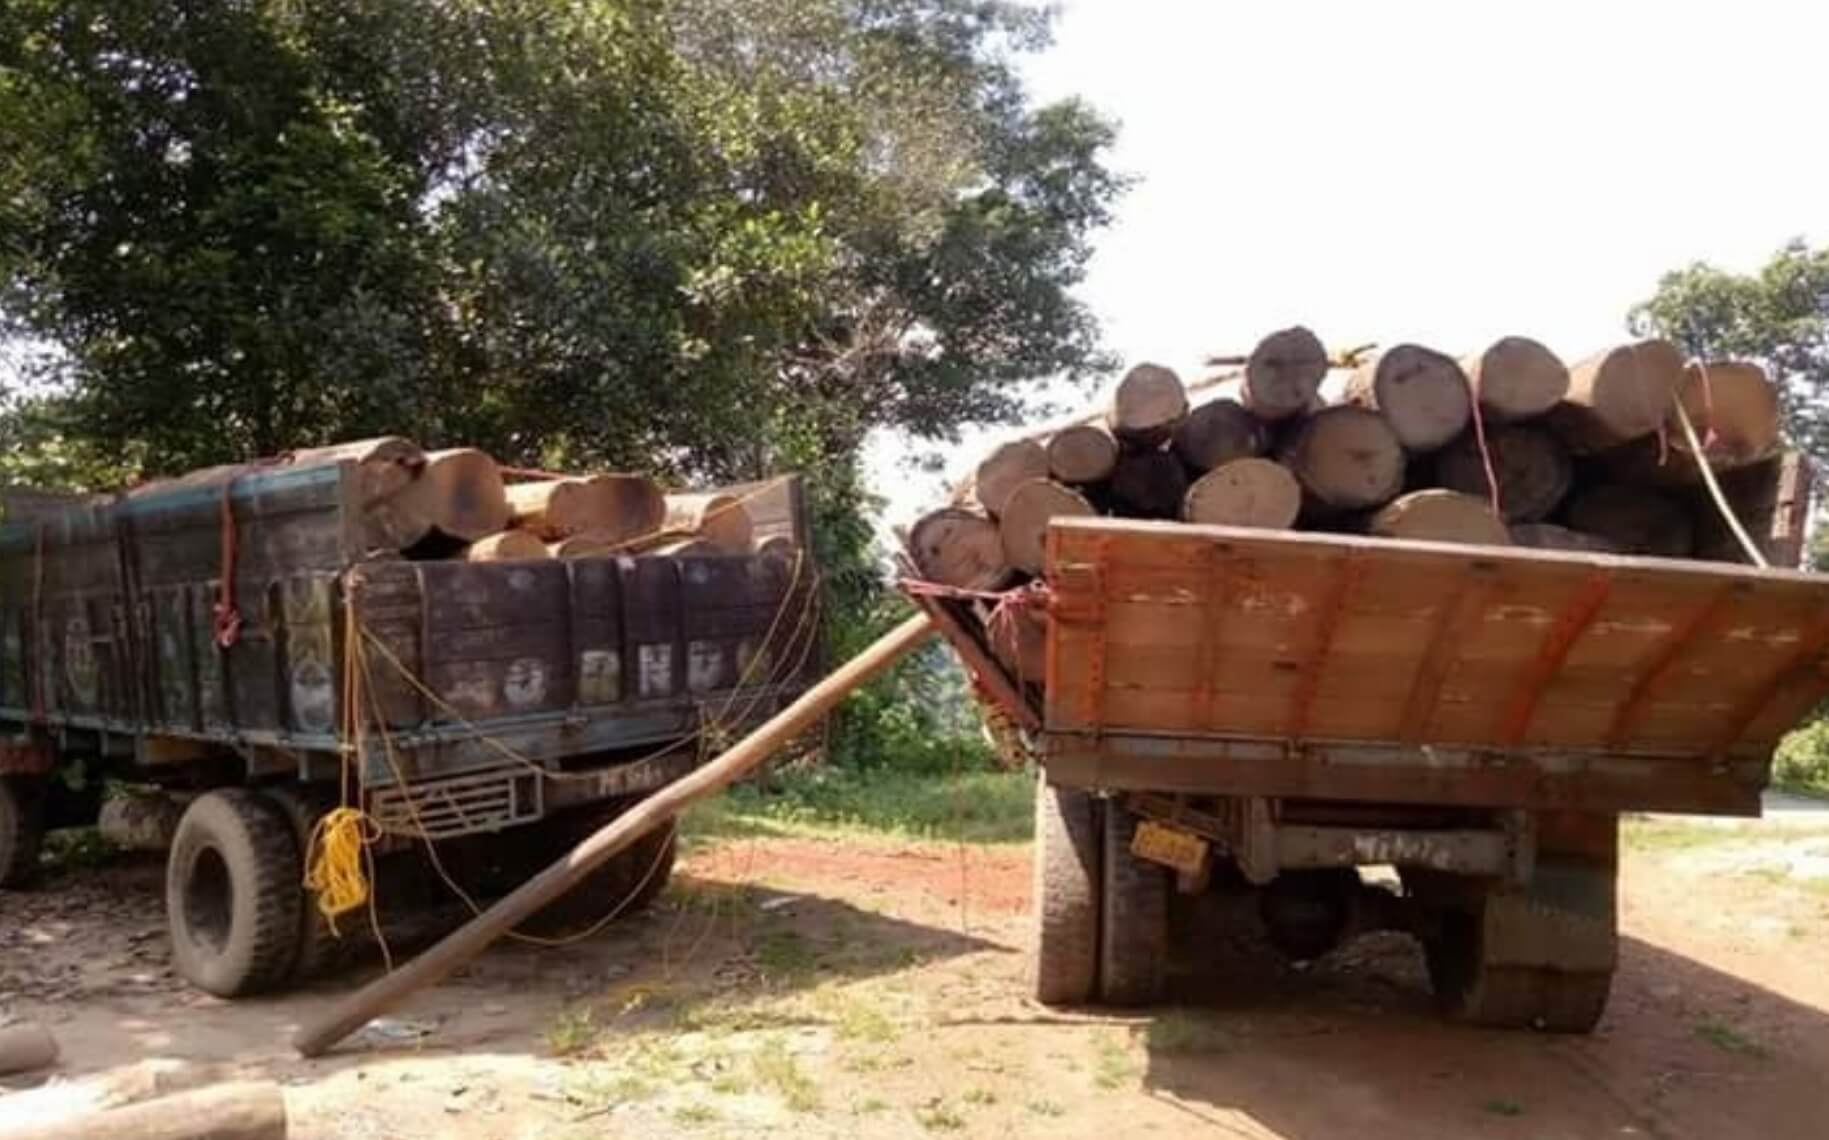 Trucks with timber worth Rs 1.64 lakh seized